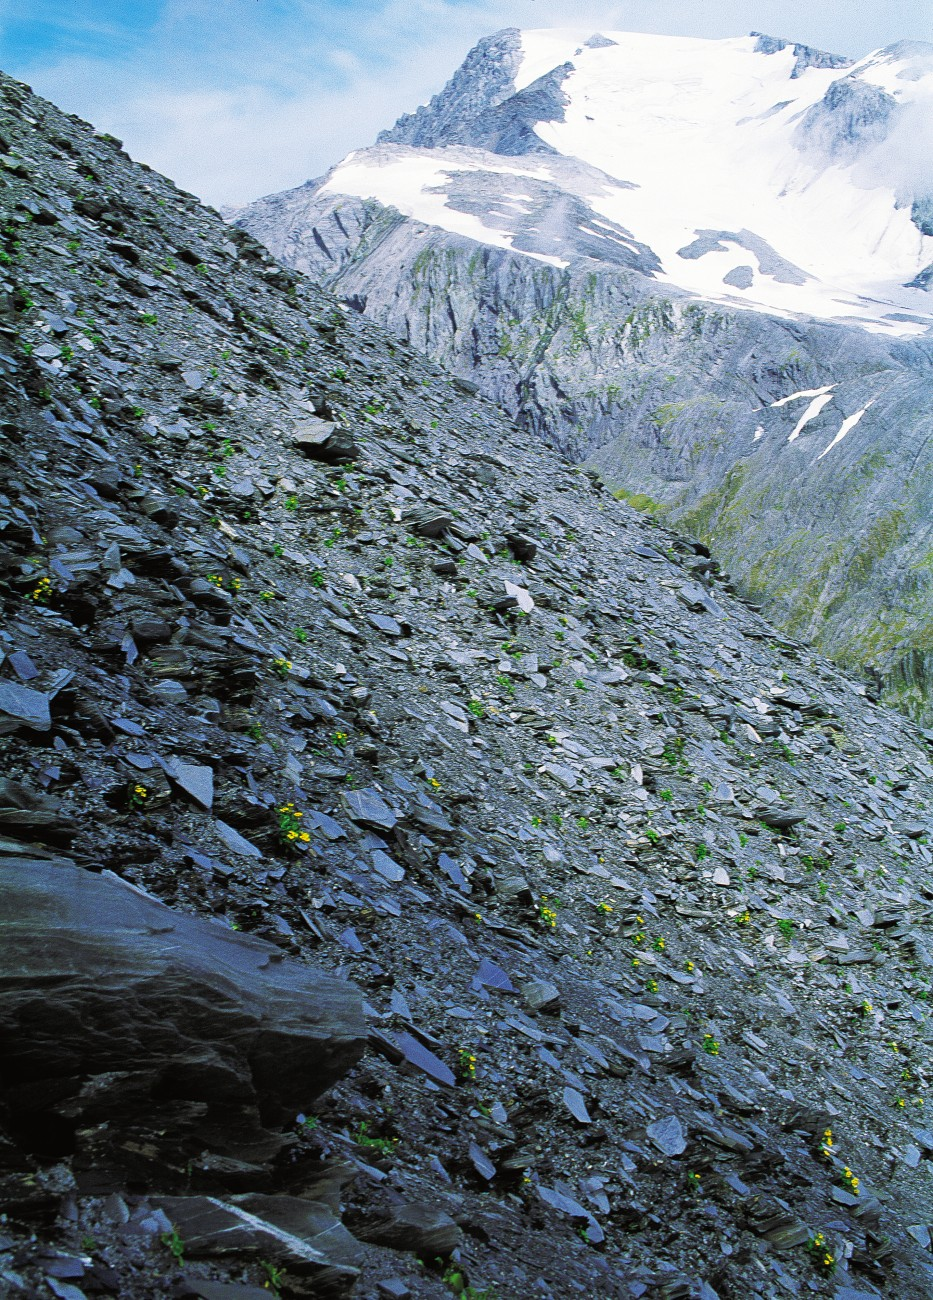 The rock fragments on scree slopes such as this one in the Waitaha Valley tend to lie in a layer only 20 cm thick, and beneath that is gritty soil. Specialised plants such as the yellow-flowered Ranunculus godleyanus anchor themselves with large arrays of roots and stems trailing on their uphill side as they wrestle with gravity. This handsome buttercup is found only between Arthur's Pass and Mt Cook at altitudes of 1200 to 2100 m.